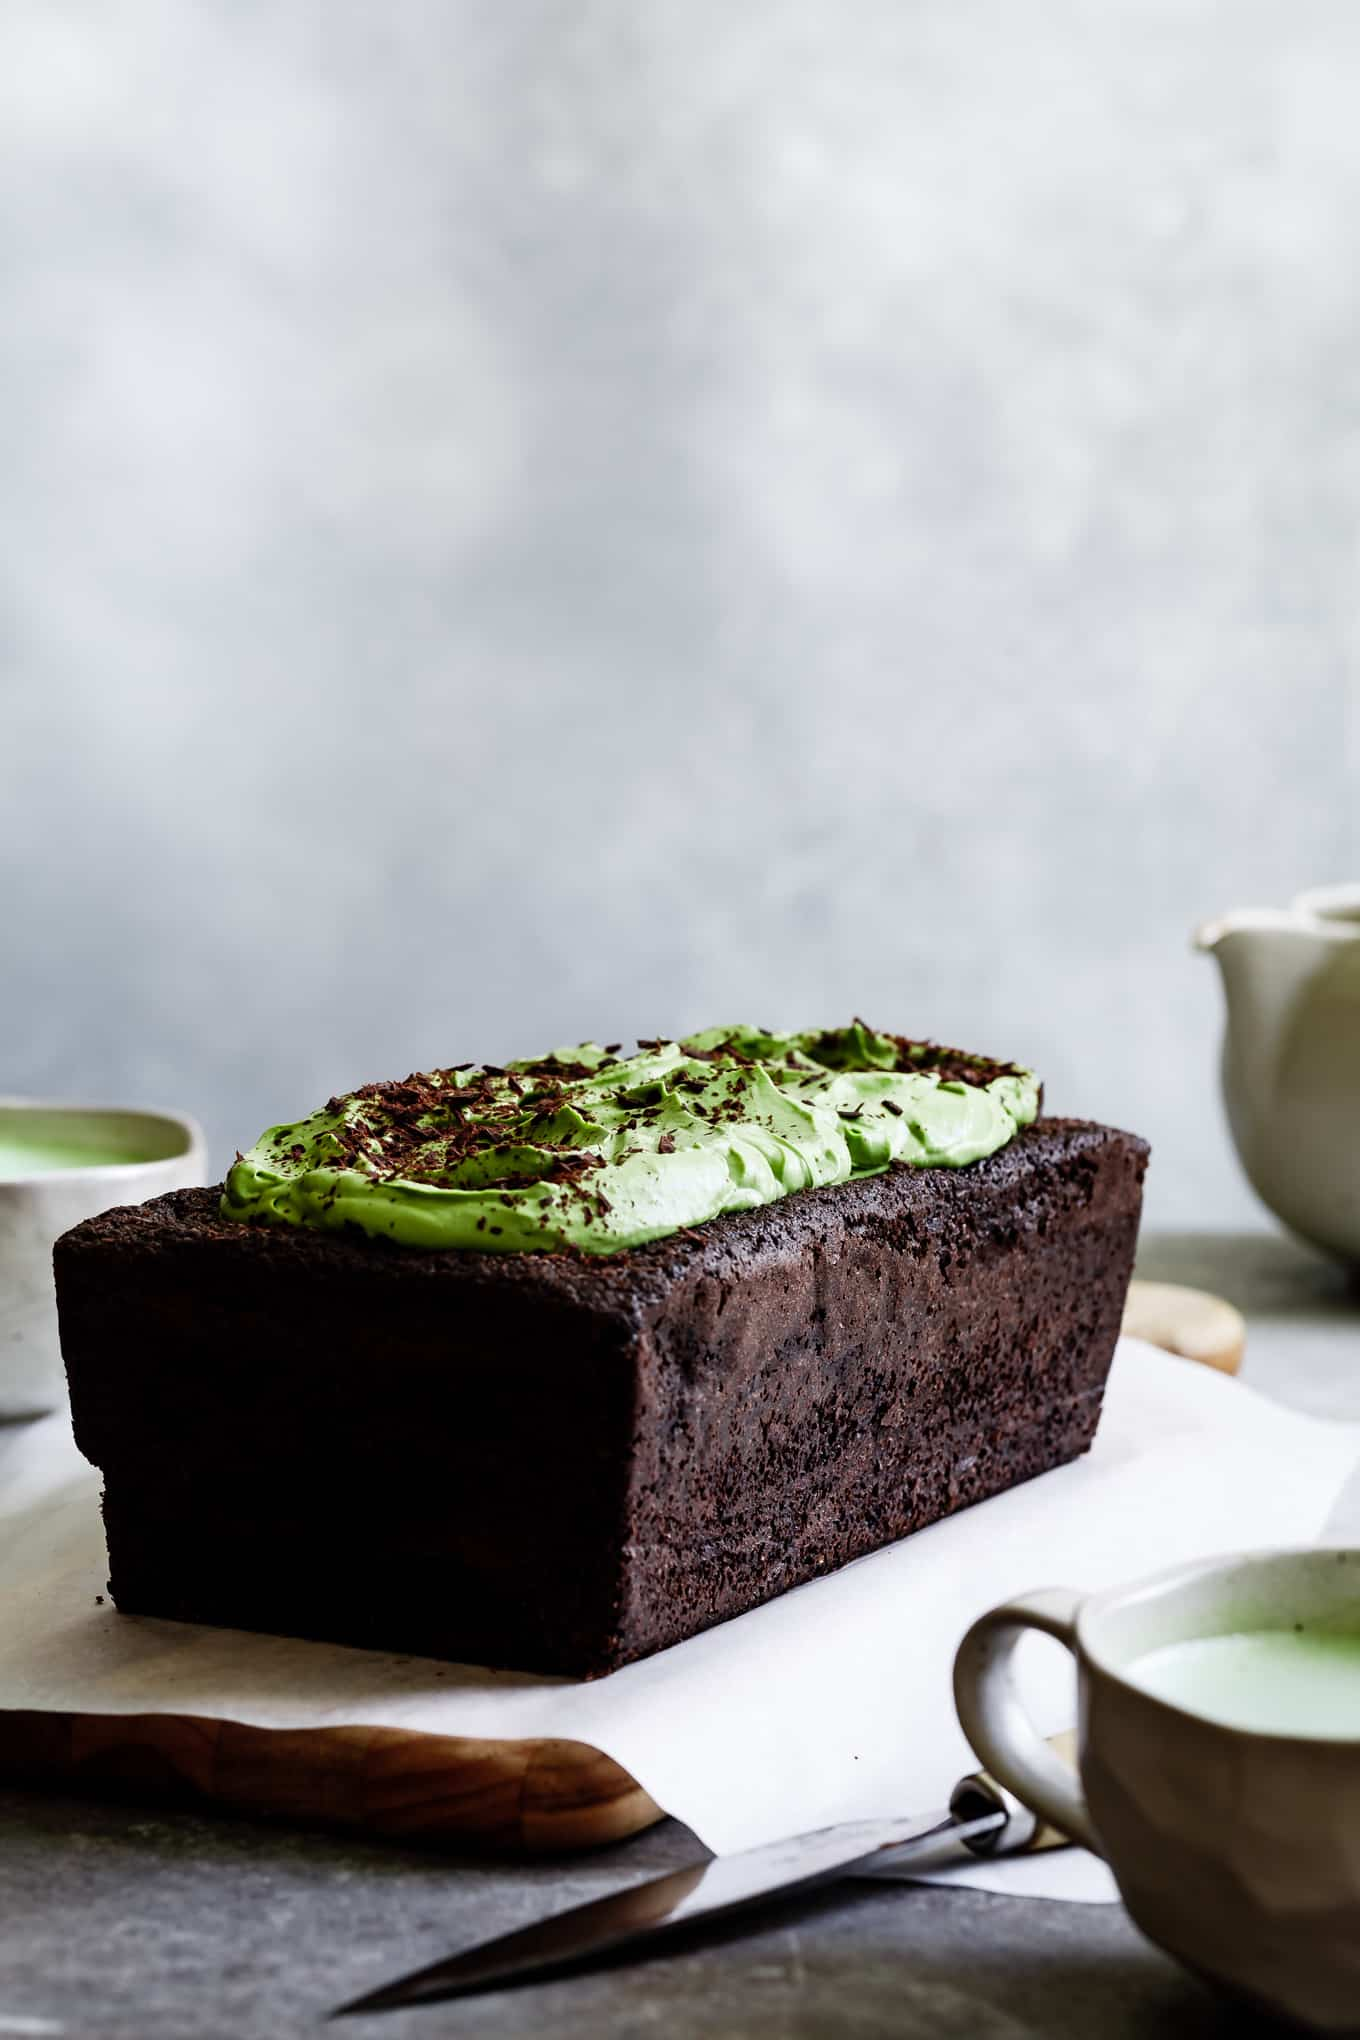 Matcha Black Sesame Chocolate Loaf Cake